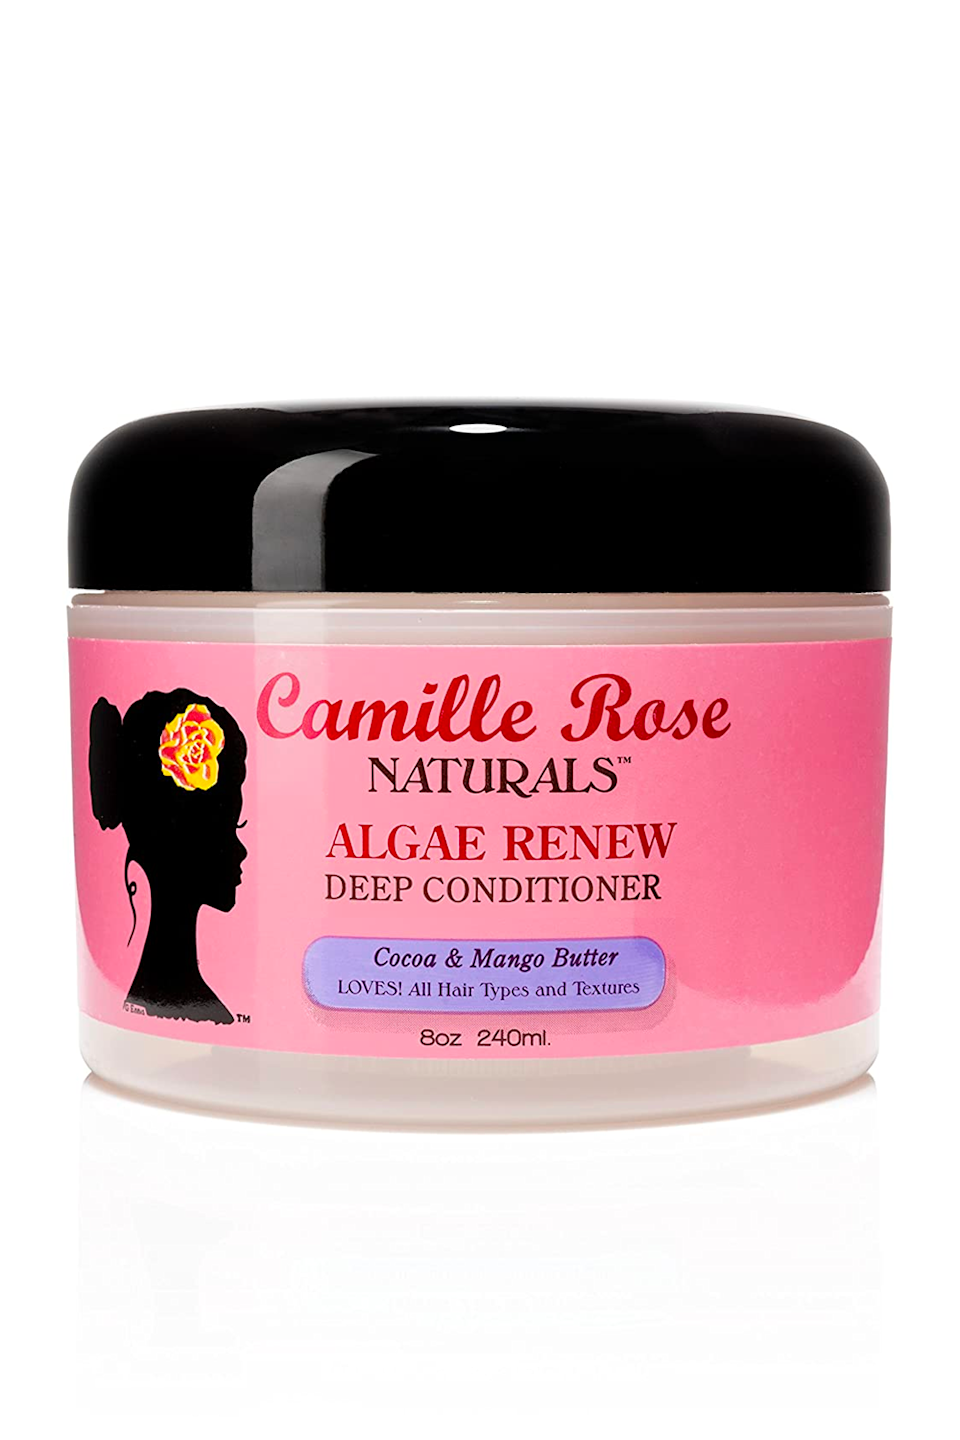 """<p><strong>Camille Rose</strong></p><p>amazon.com</p><p><strong>$19.23</strong></p><p><a href=""""https://www.amazon.com/dp/B006FJKK1Y?tag=syn-yahoo-20&ascsubtag=%5Bartid%7C10049.g.35265911%5Bsrc%7Cyahoo-us"""" rel=""""nofollow noopener"""" target=""""_blank"""" data-ylk=""""slk:Shop Now"""" class=""""link rapid-noclick-resp"""">Shop Now</a></p><p>Every couple weeks, finish off your cleansing and conditioning routine with this deep treatment from Camille Rose, which is <strong>formulated with rich mango butter and coconut oil for extra hydration</strong>. For super-dry 4a hair, throw a plastic cap on your head and sit under a <a href=""""https://www.amazon.com/dp/B07XQ7CW5V?linkCode=ogi&tag=syn-yahoo-20&ascsubtag=%5Bartid%7C10049.g.35265911%5Bsrc%7Cyahoo-us"""" rel=""""nofollow noopener"""" target=""""_blank"""" data-ylk=""""slk:steamer"""" class=""""link rapid-noclick-resp"""">steamer</a> or hooded dryer for 30 minutes while the formula does its thing.</p>"""